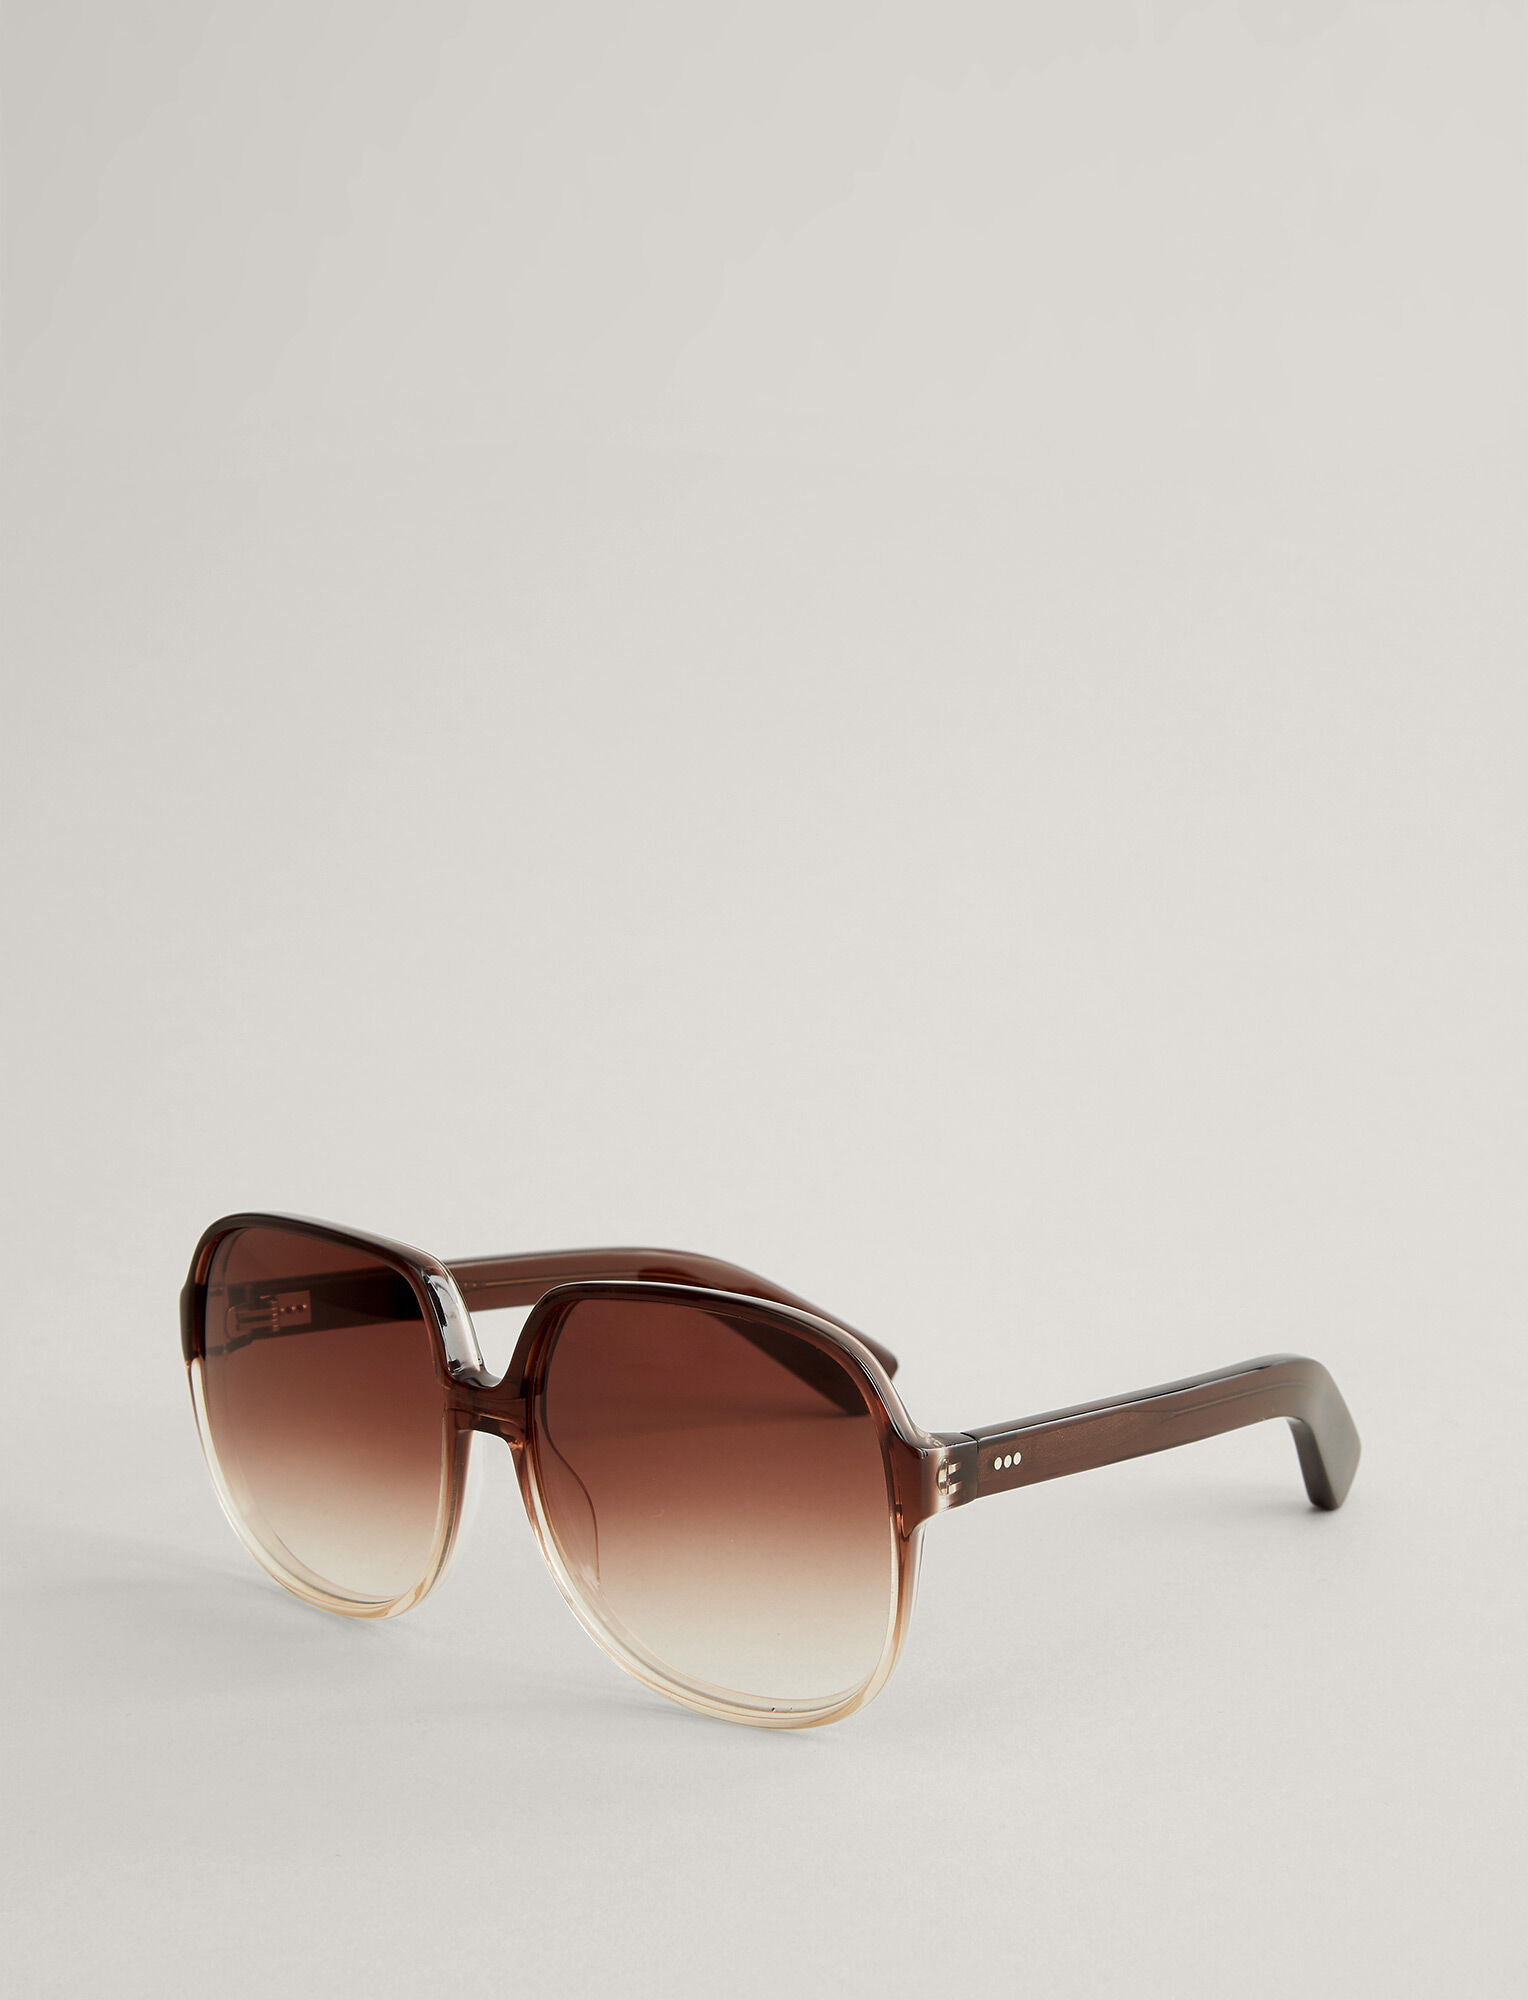 Joseph, Lunettes de soleil Fulham, in TRANSPARENT BROWN